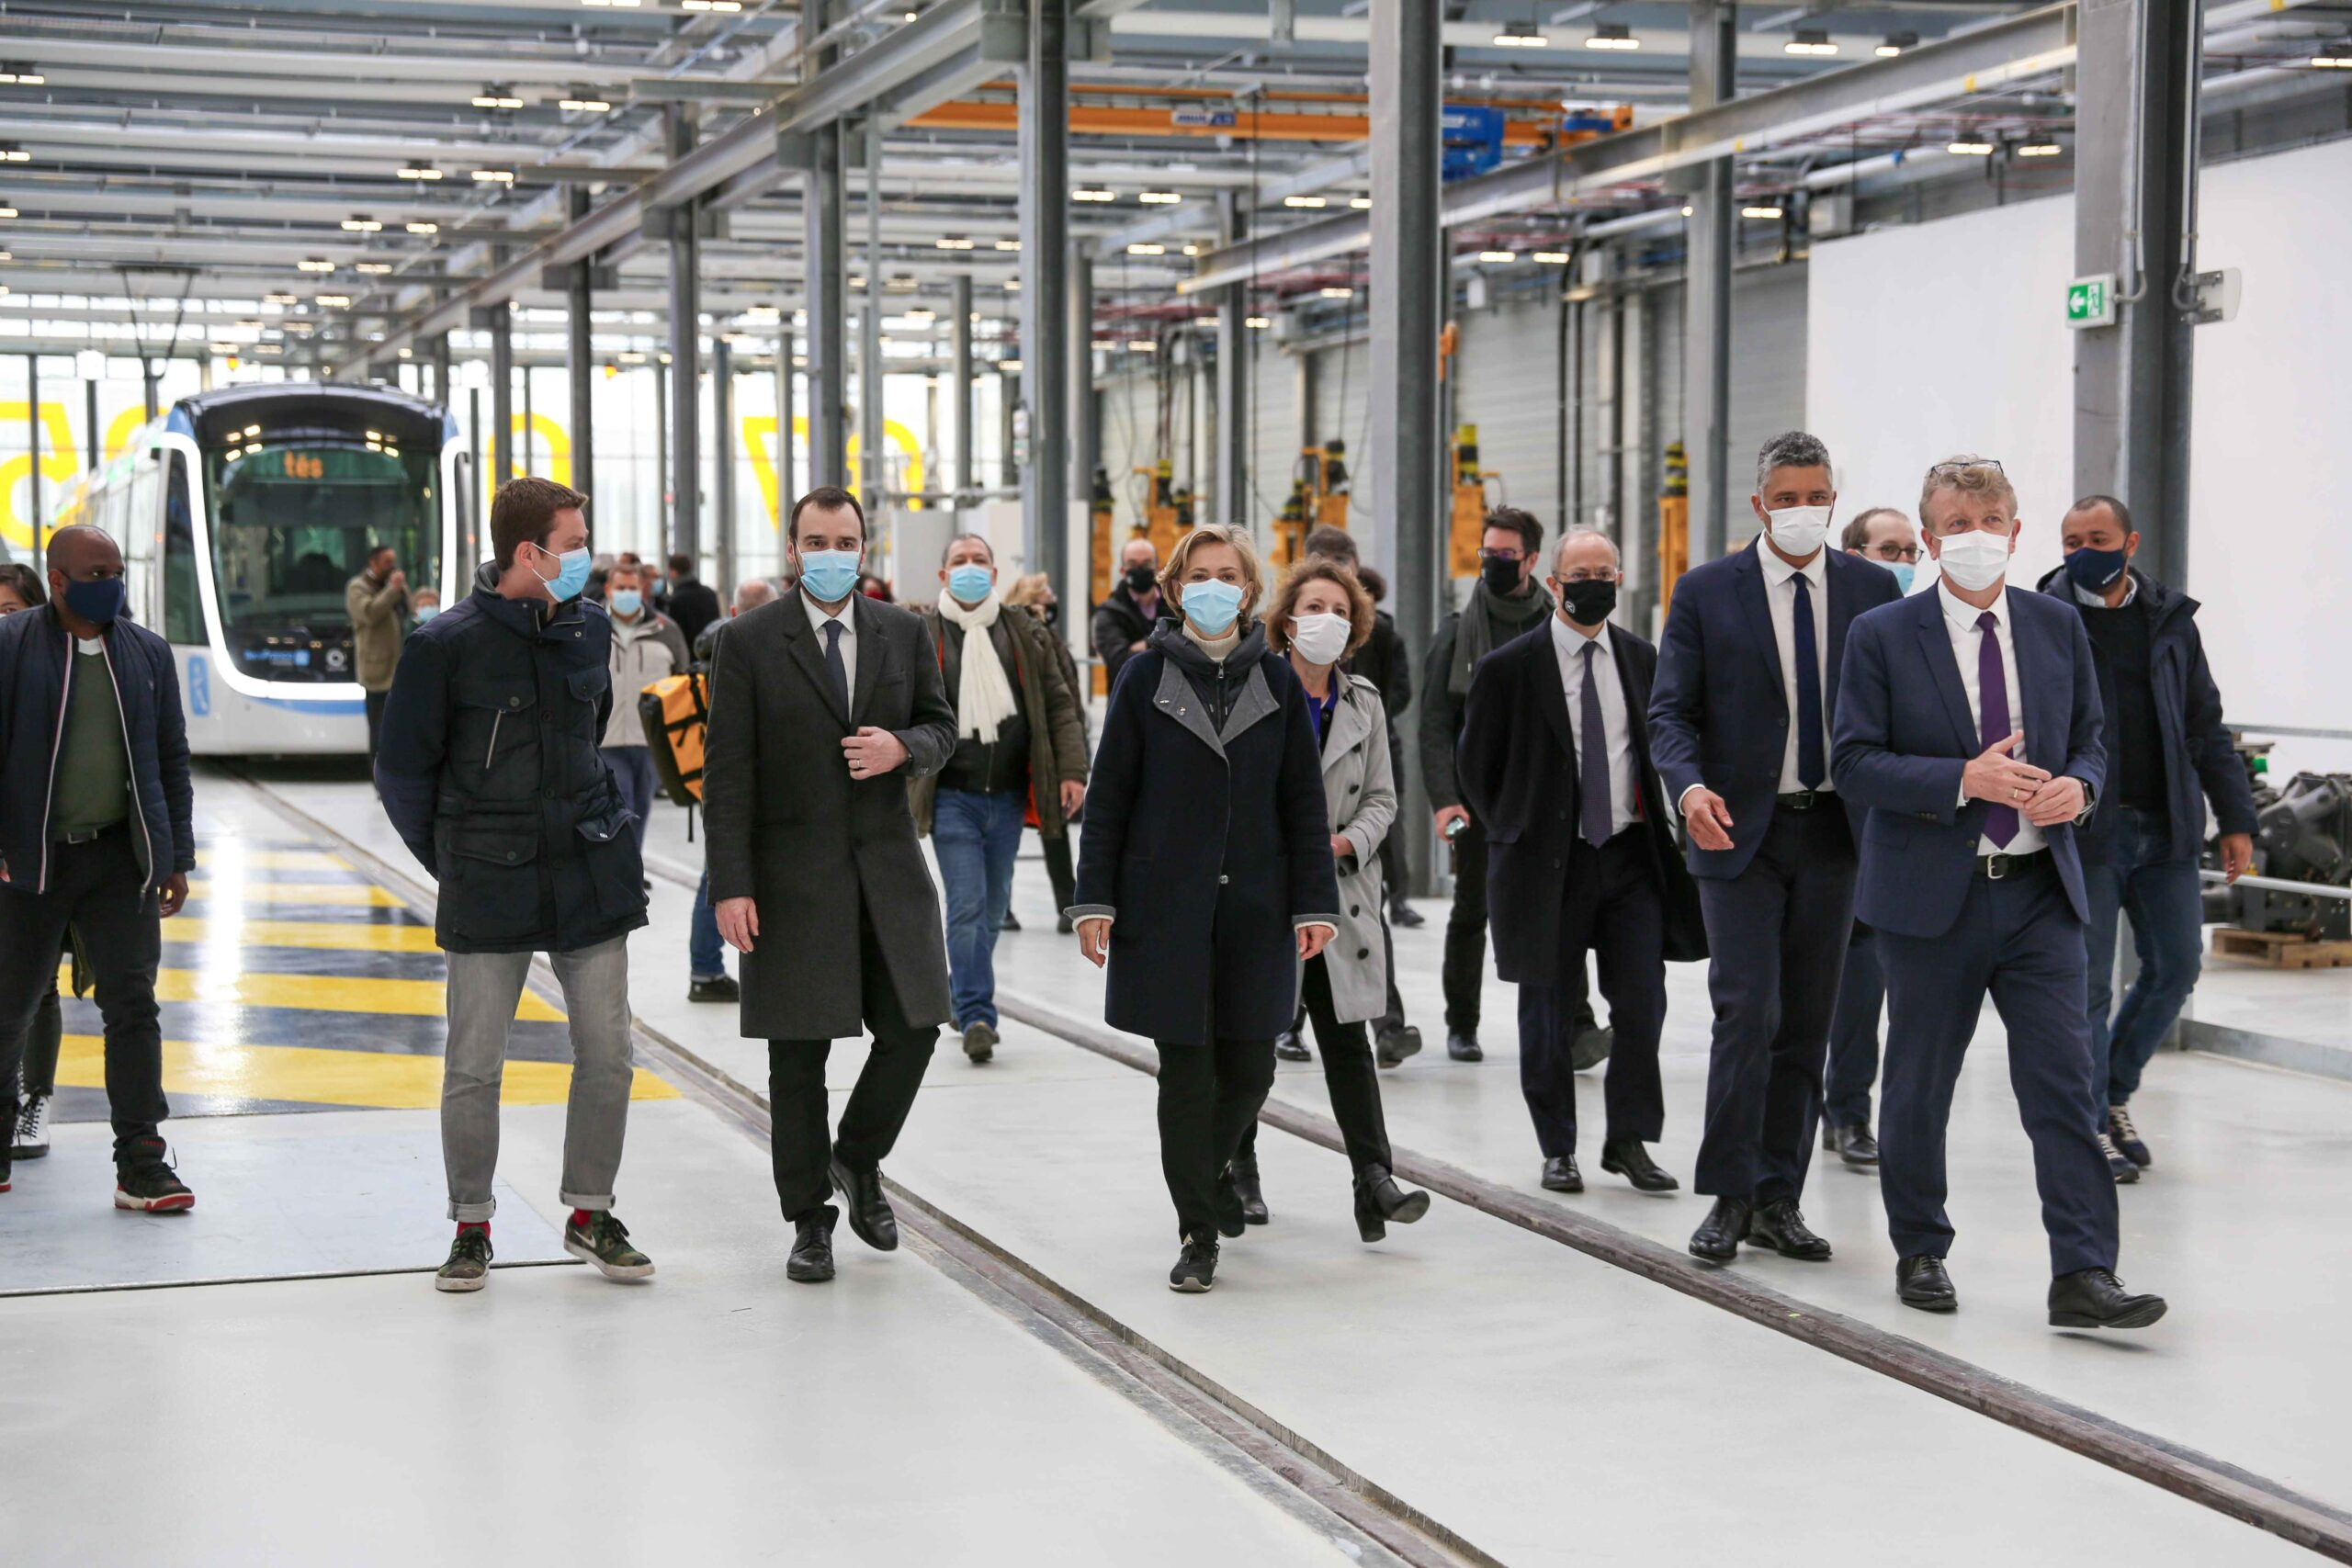 President of the French region of Ile-de-France Valerie Pecresse (C) visits the repair facilities of the the new tramway T9 tram line between Porte de Choisy and Orly City, southeastern Paris, on April 10, 2021 at Orly City, during the open day of the lin